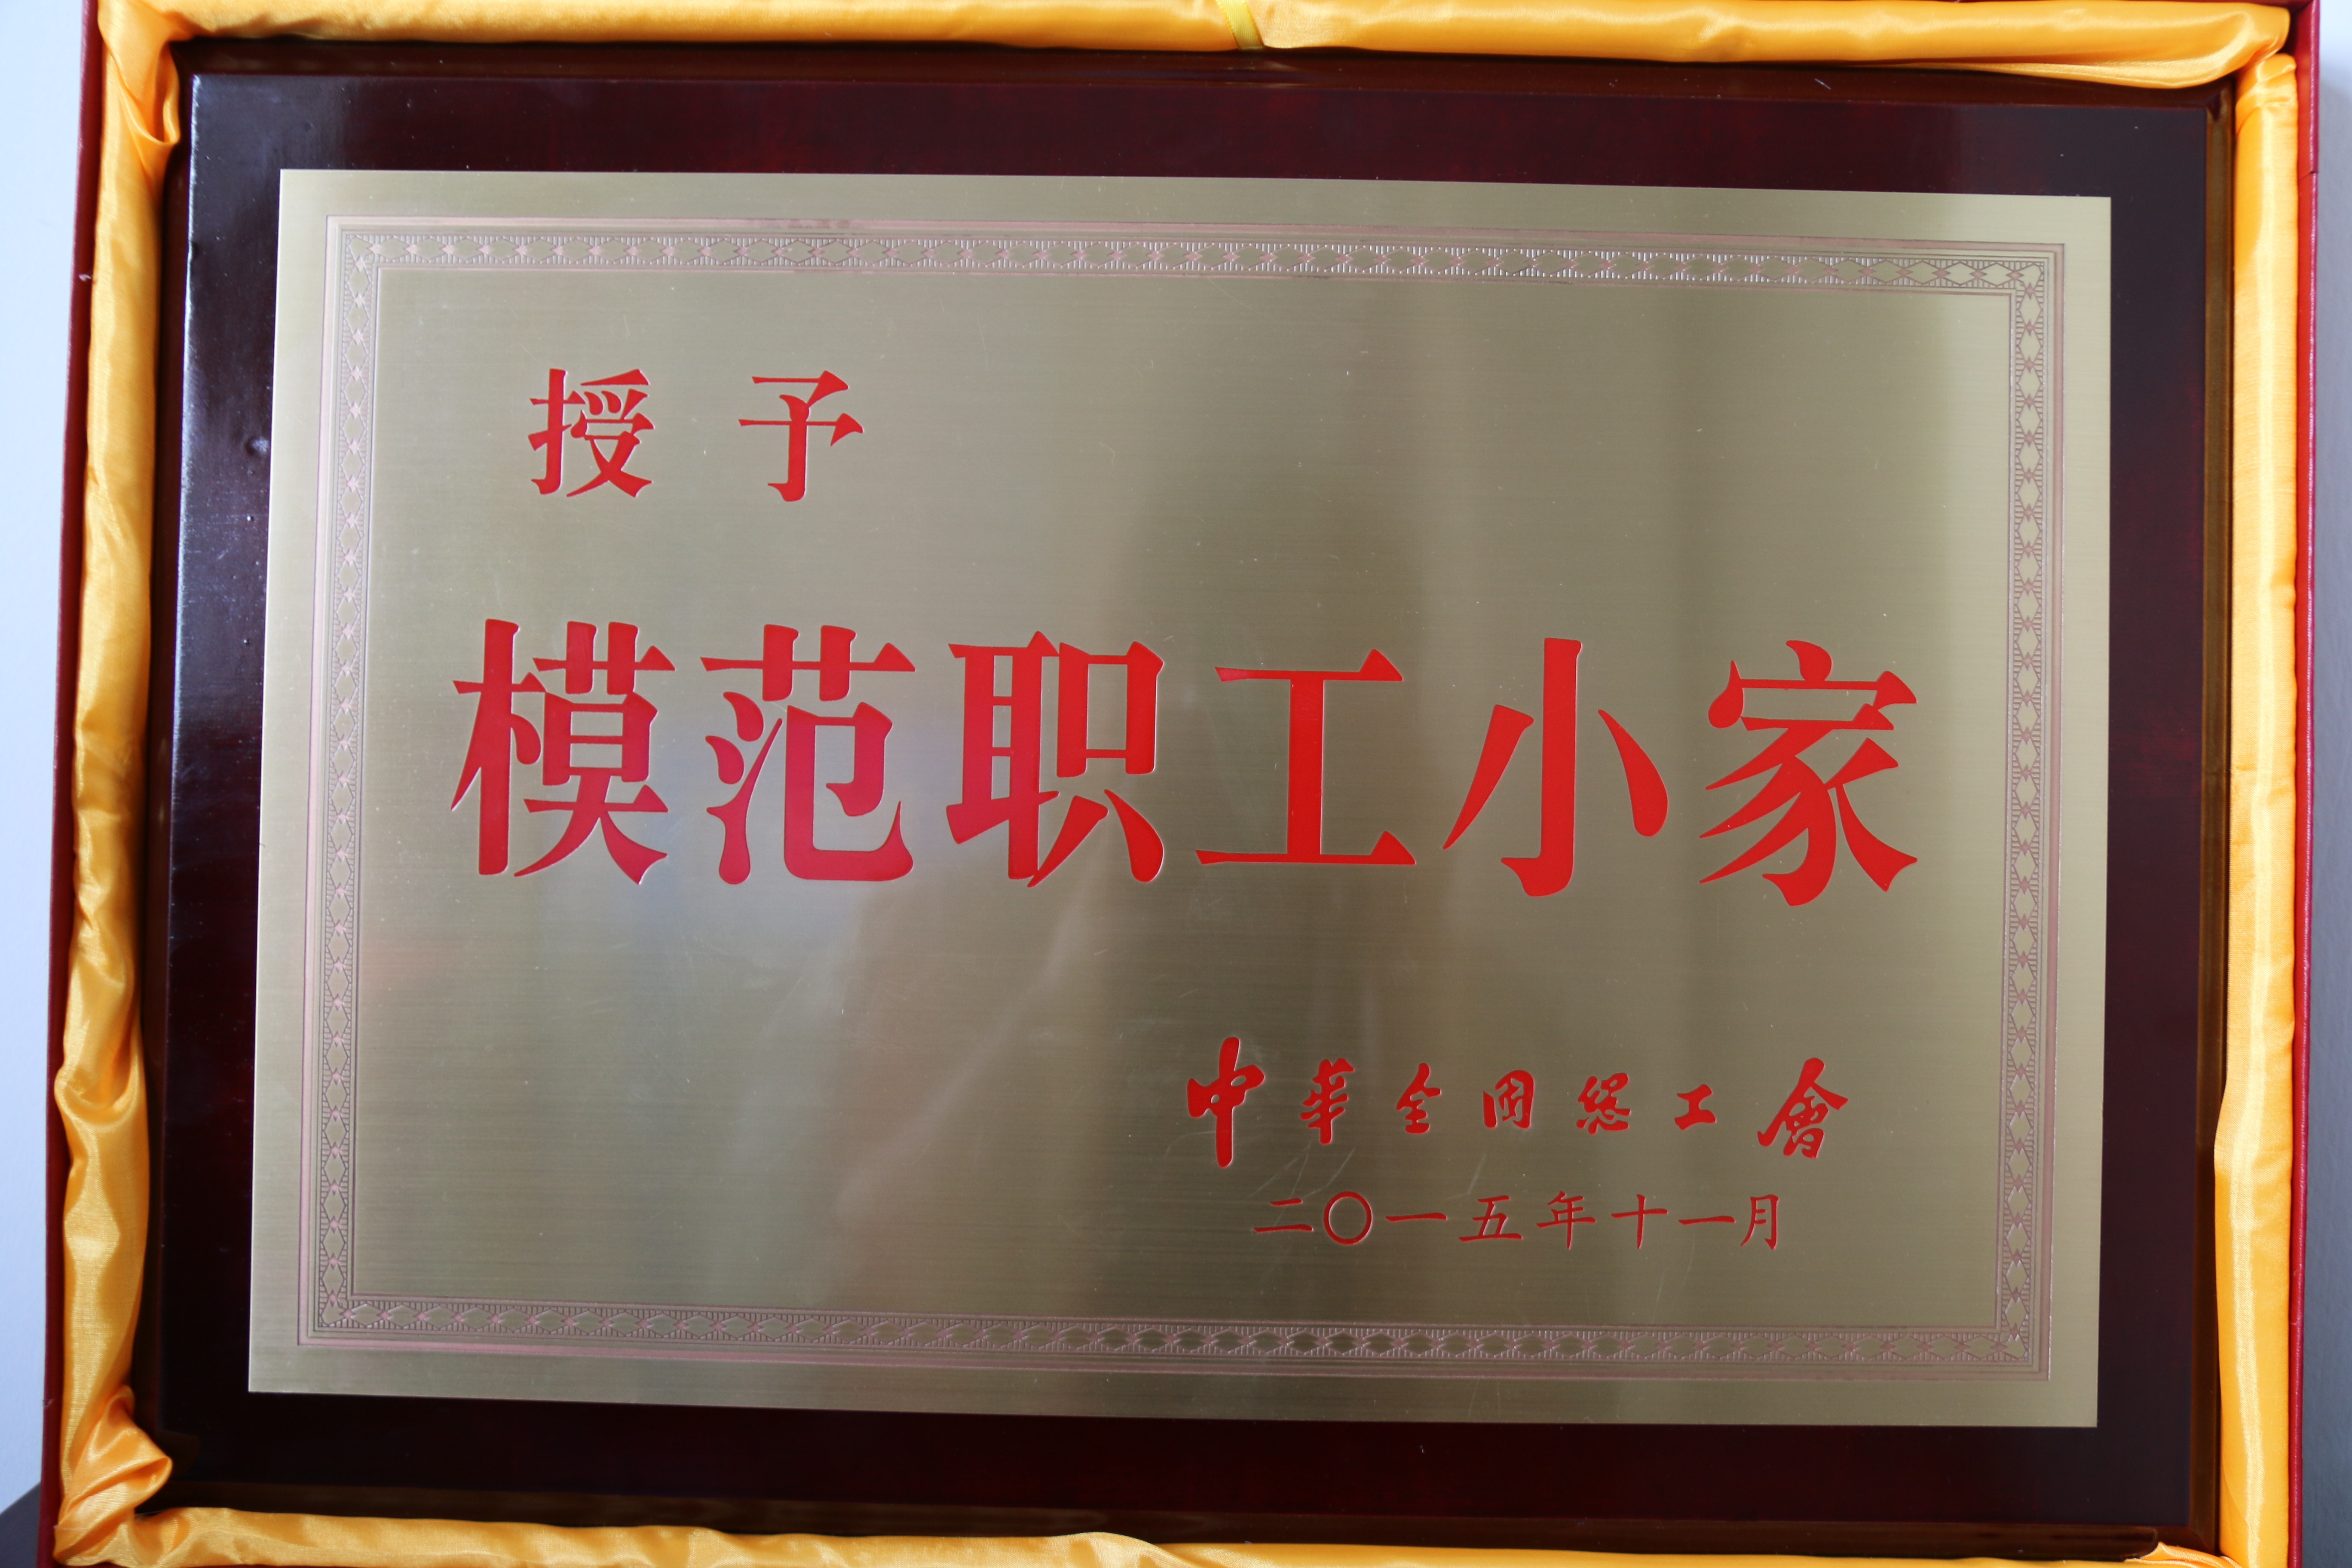 The Jiama Mine was awarded the honorable title of